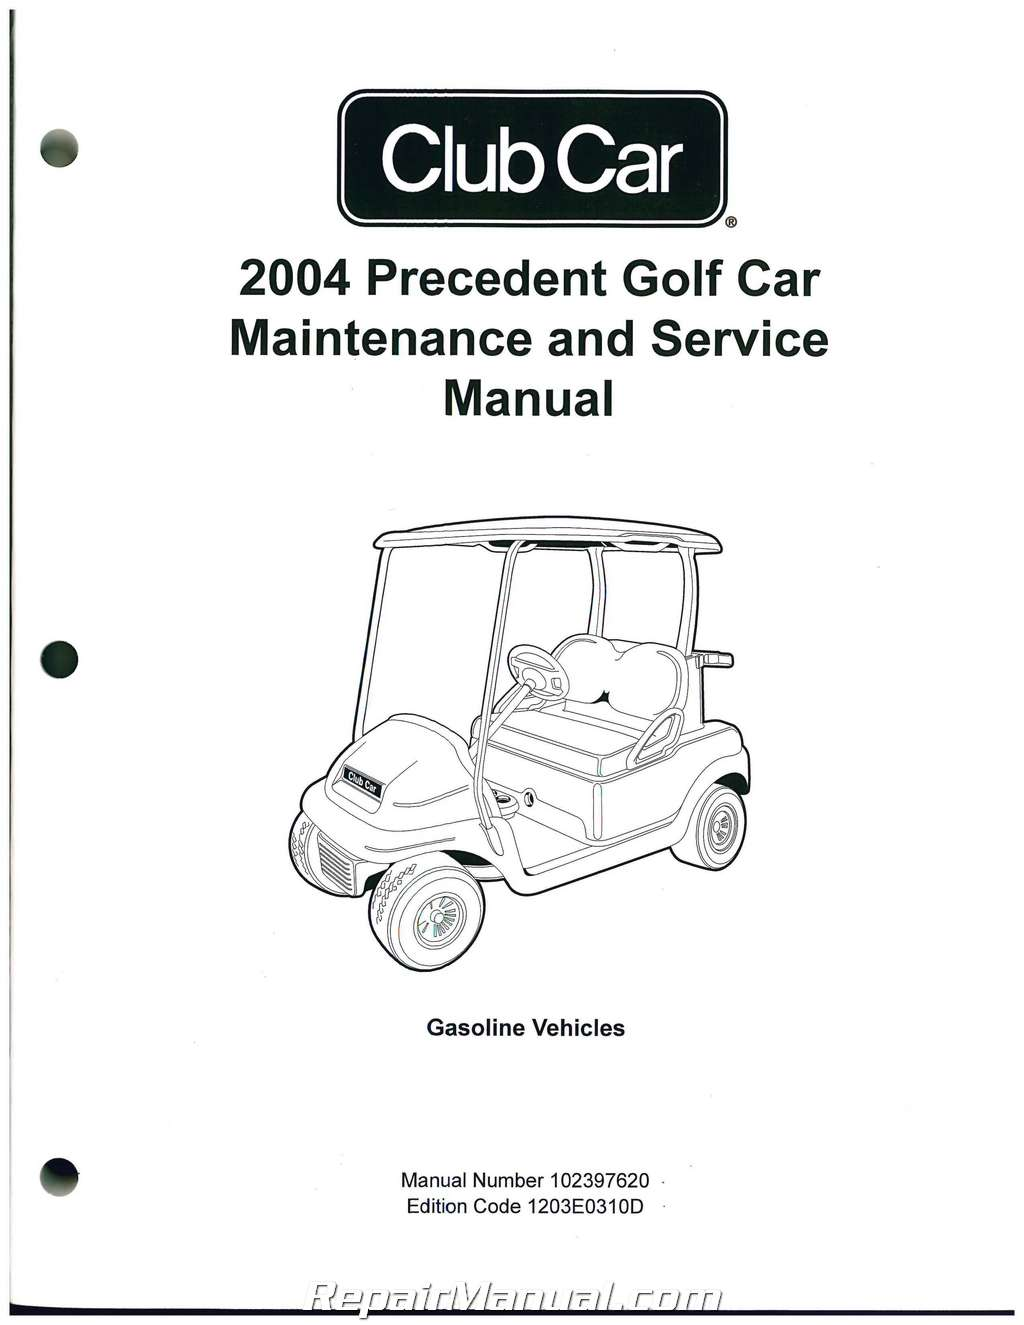 2004 club car manual various owner manual guide u2022 rh justk co 2005 Club Car Repair Manual 1999 Club Car Repair Manual